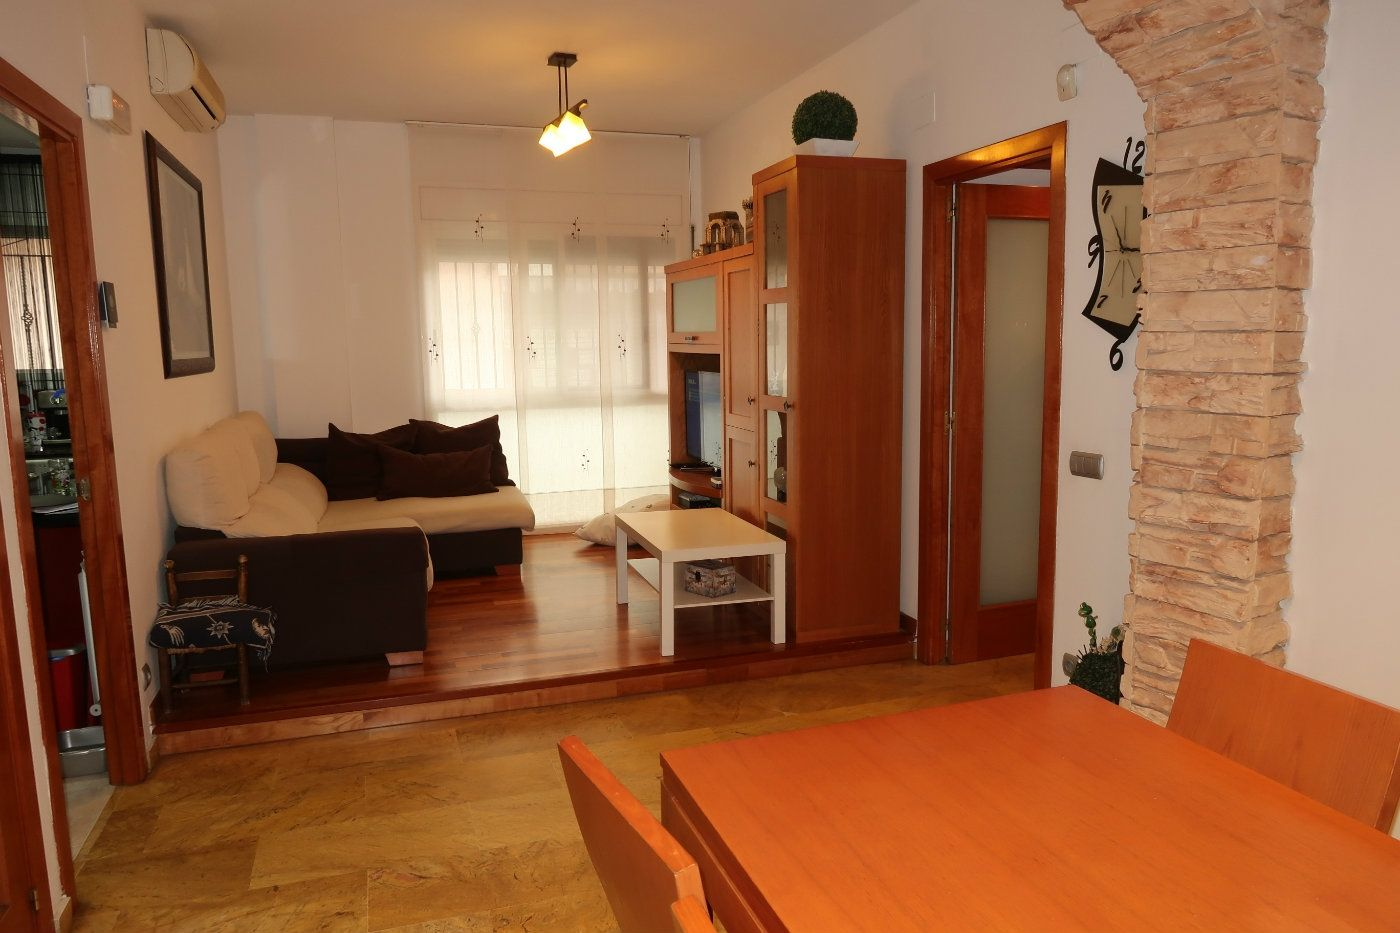 Location Appartement à Vallirana